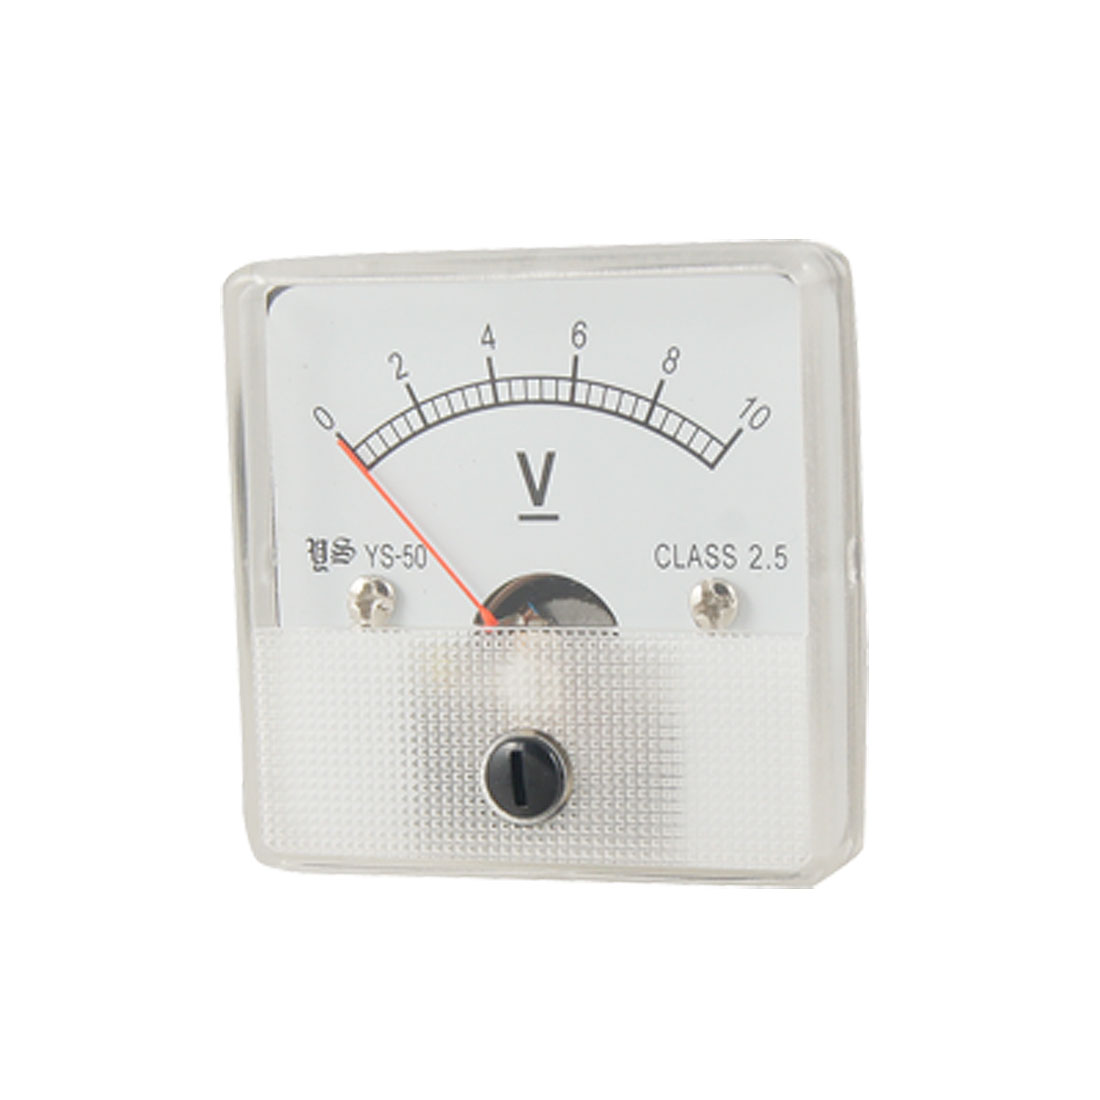 DC 0-10V Voltmeter Voltage Panel Meter w Installing Parts